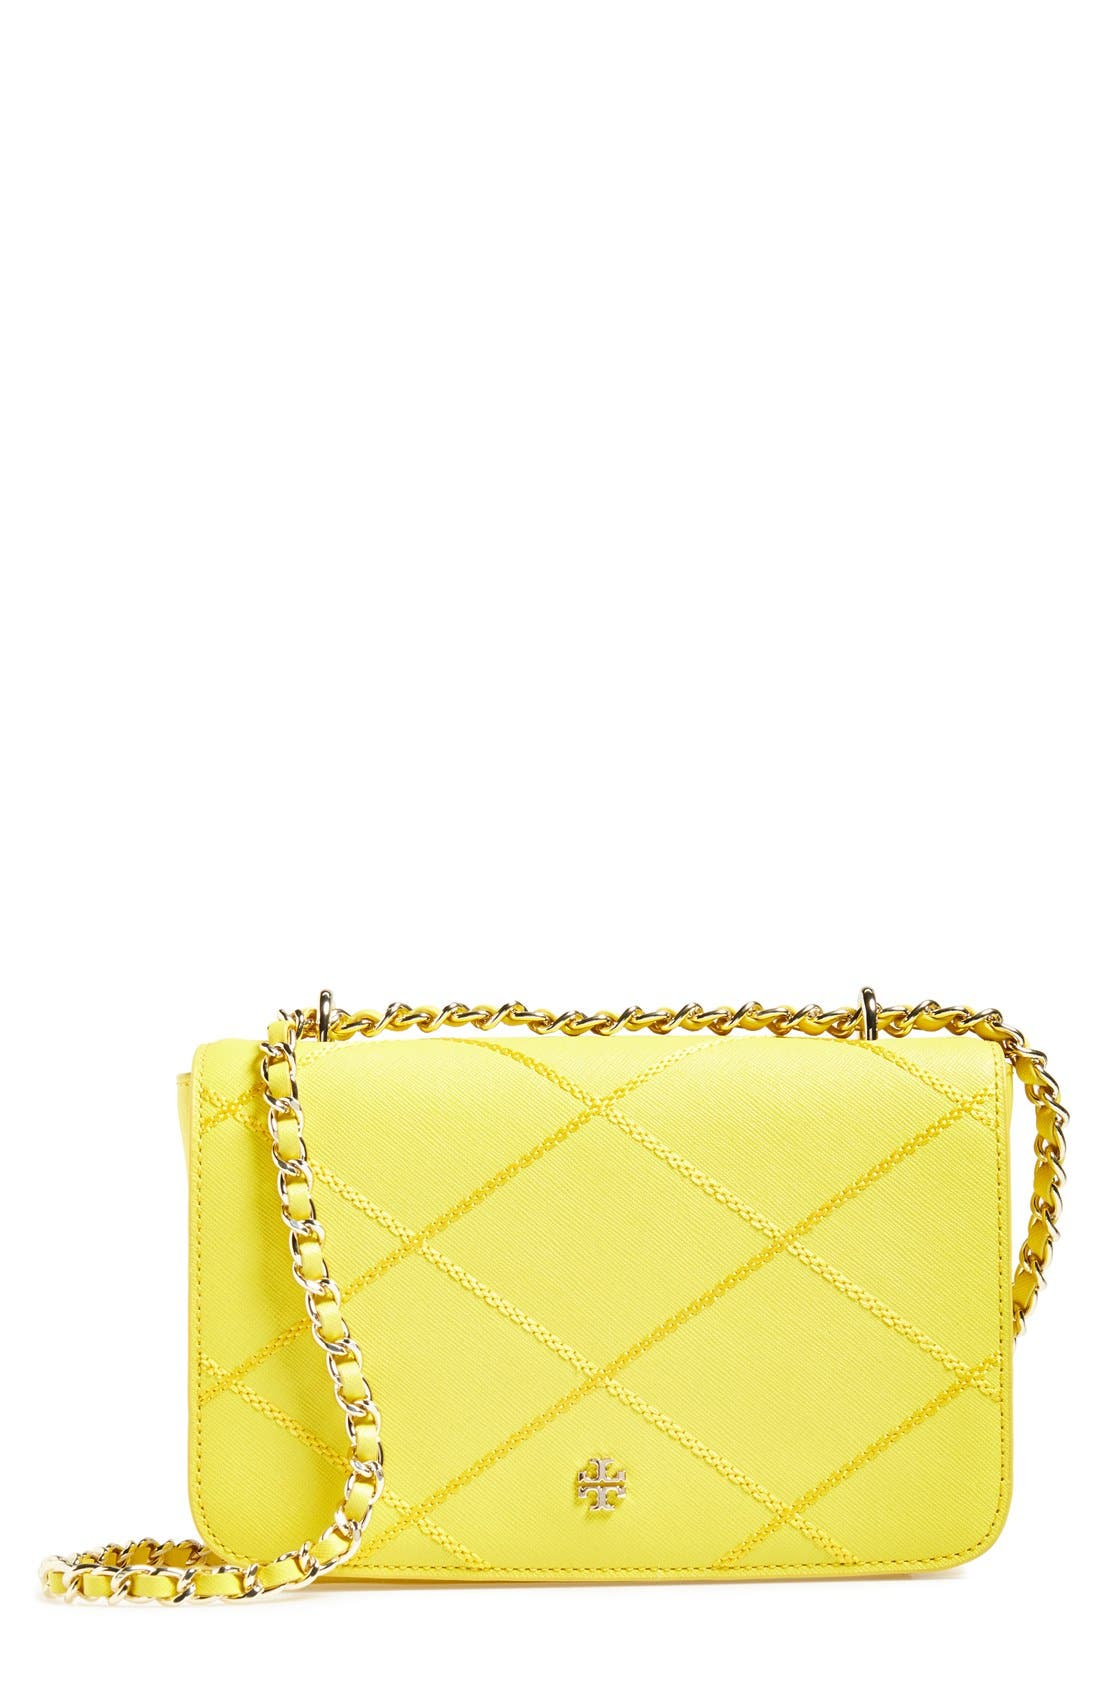 Alternate Image 1 Selected - Tory Burch 'Robinson' Stitched Leather Shoulder Bag